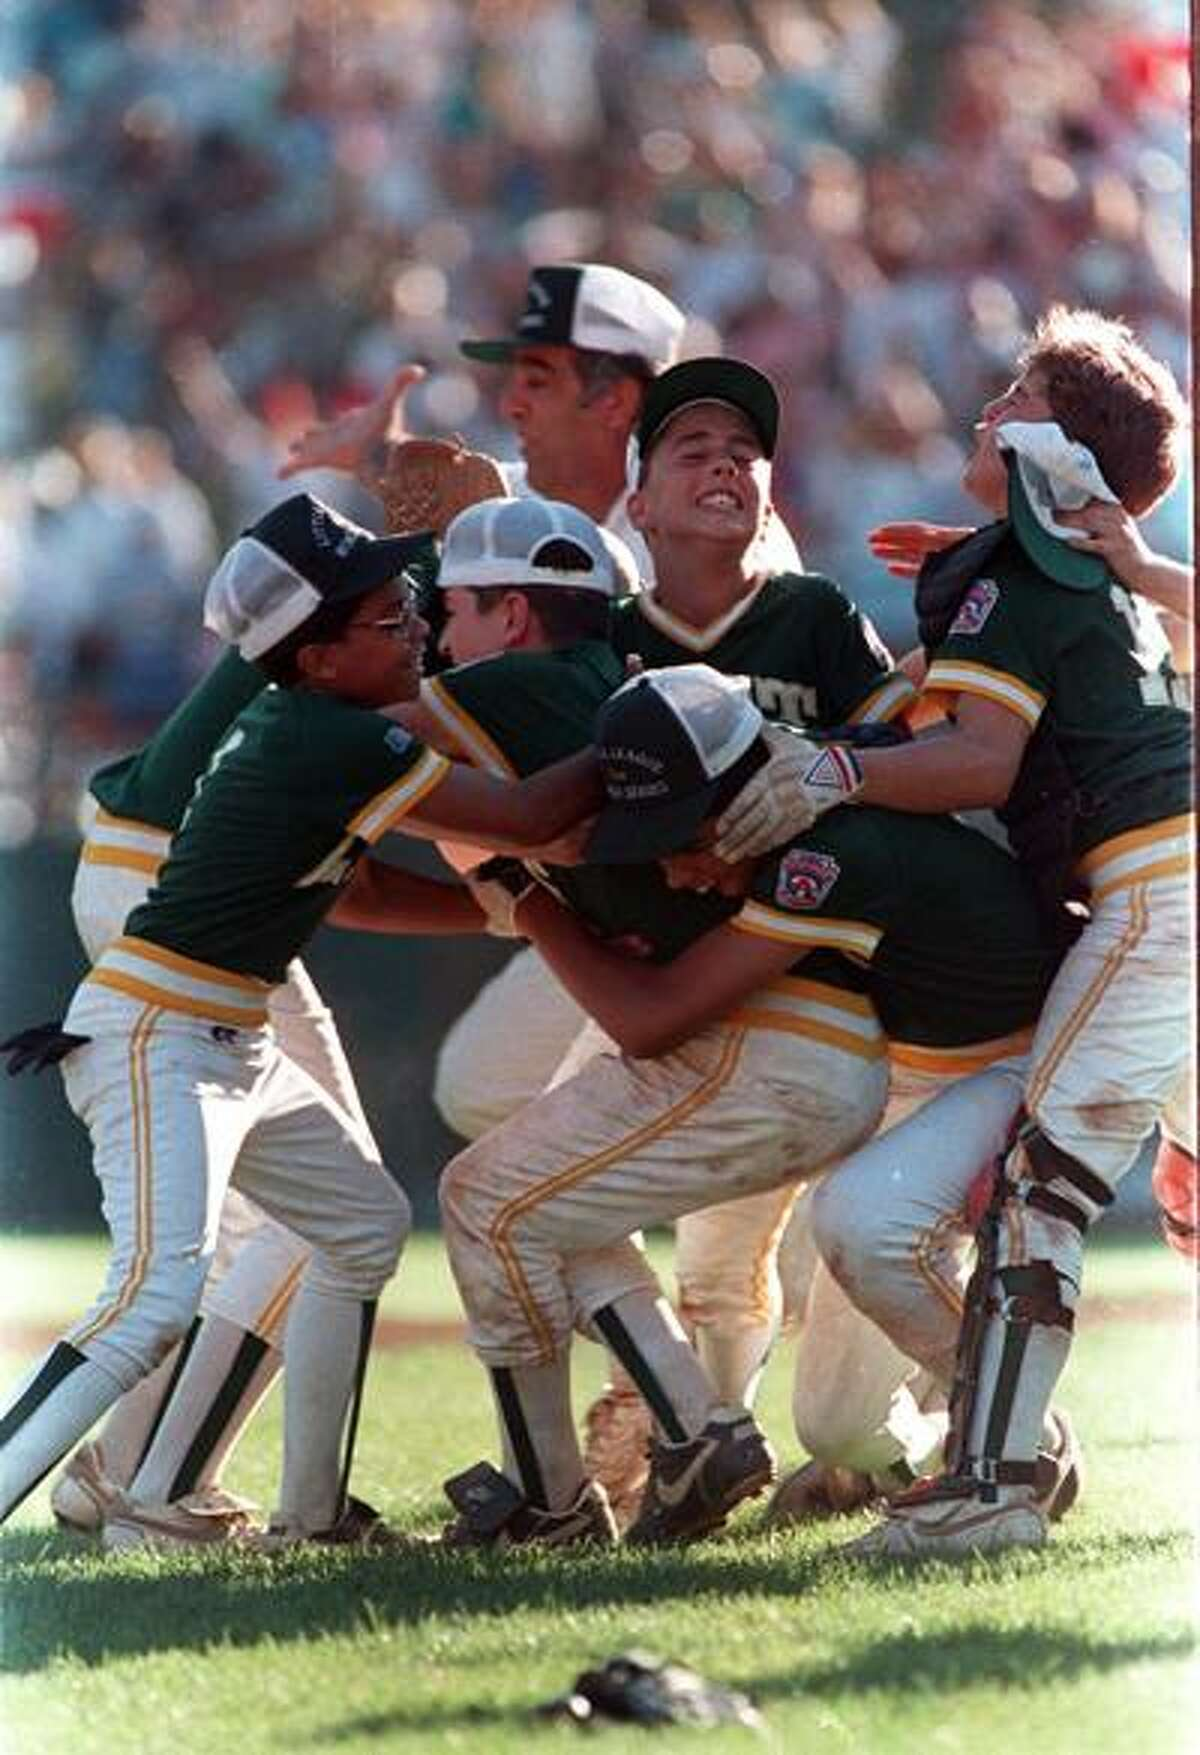 Members of the Trumbull,Conn., Little League team mob winning pitcher Chris Drury, second from left with cap askew, Aug. 26, 1989 as they celebrate on the field at Williamsport, Pa. Connecticut had just defeated Taiwan in the championship game of the Little League World Series. In background is Connecticut coach Bob Zullo. (AP Photo/Rusty Kennedy)